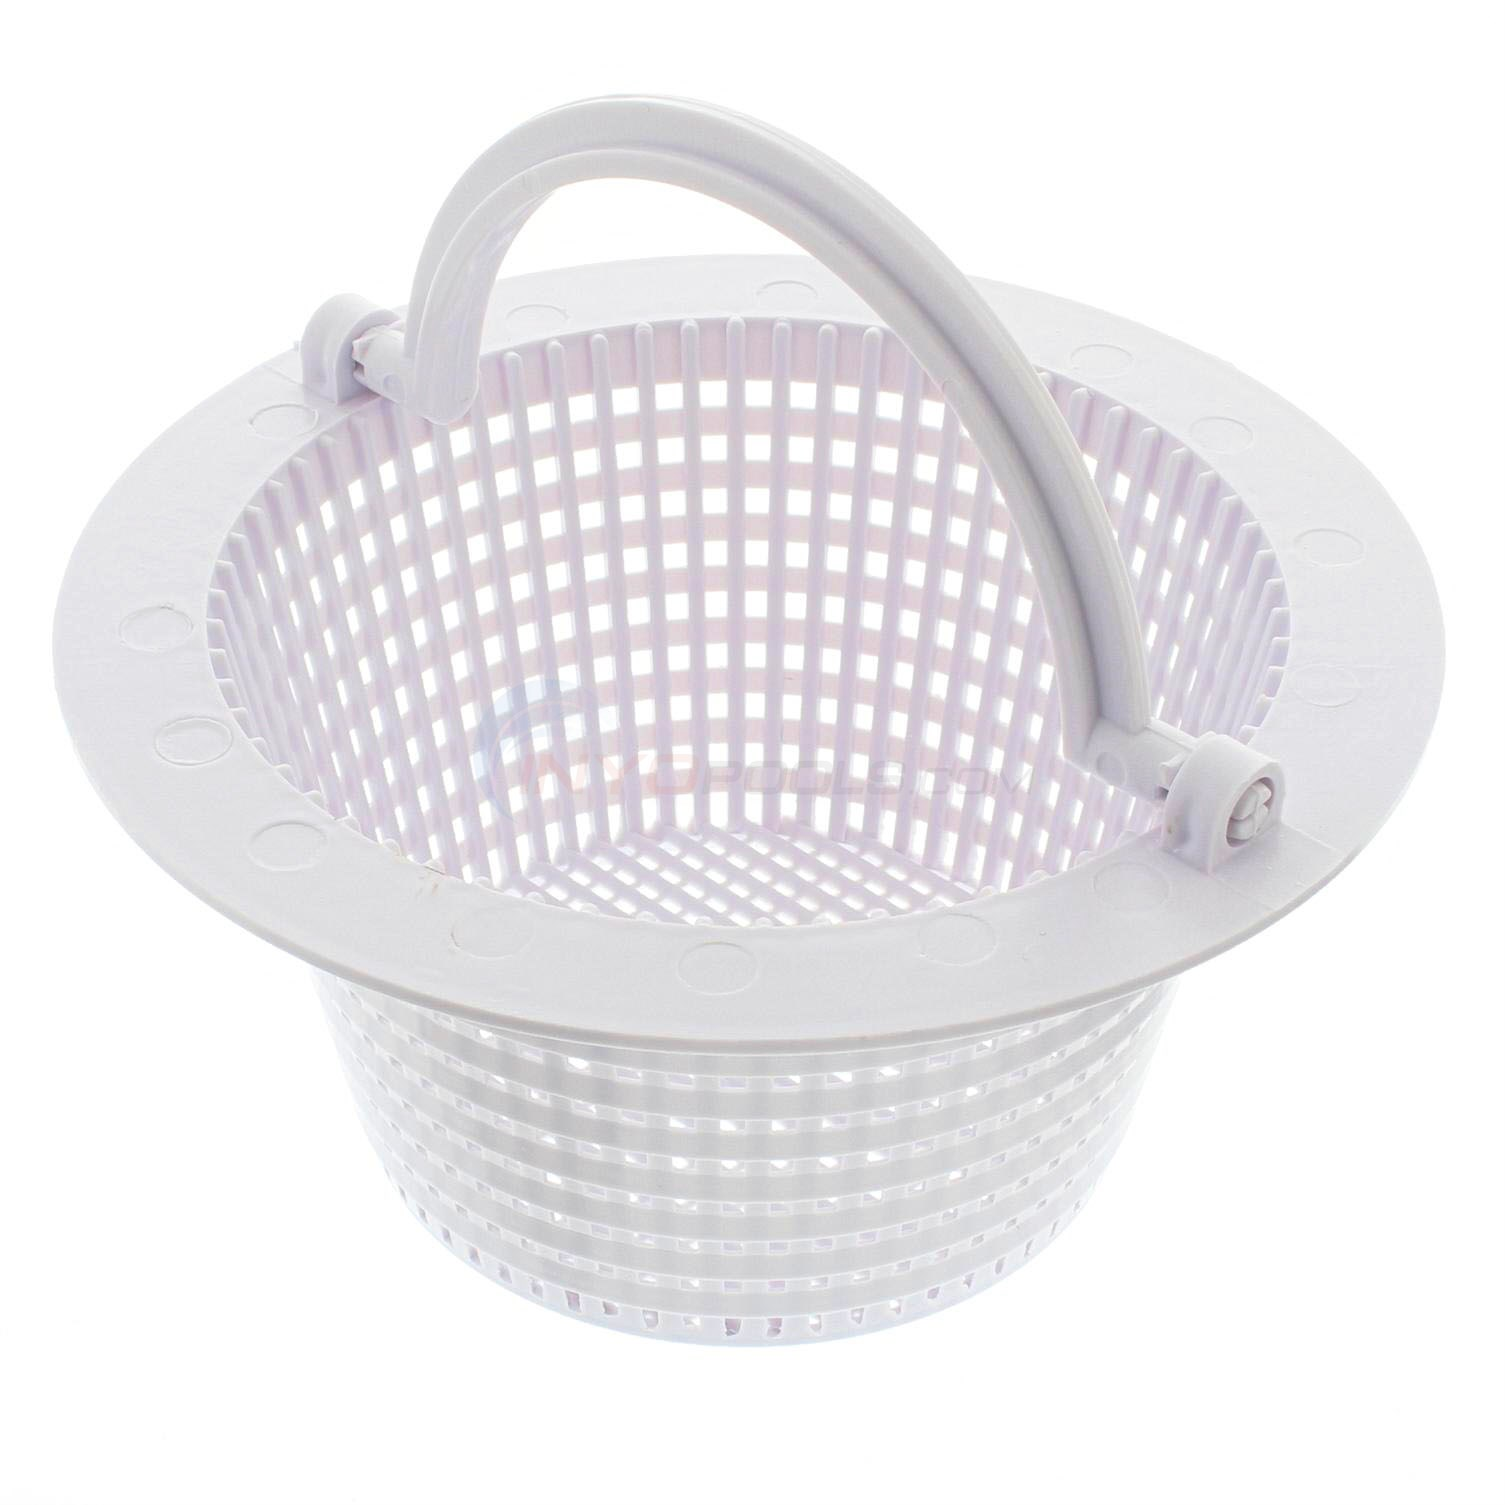 "No Longer Available BASKET WHITE Replace With <a class=""productlink"" href=""http://www.inyopools.com/Products/07501352012534.htm"">4031-030</a>"